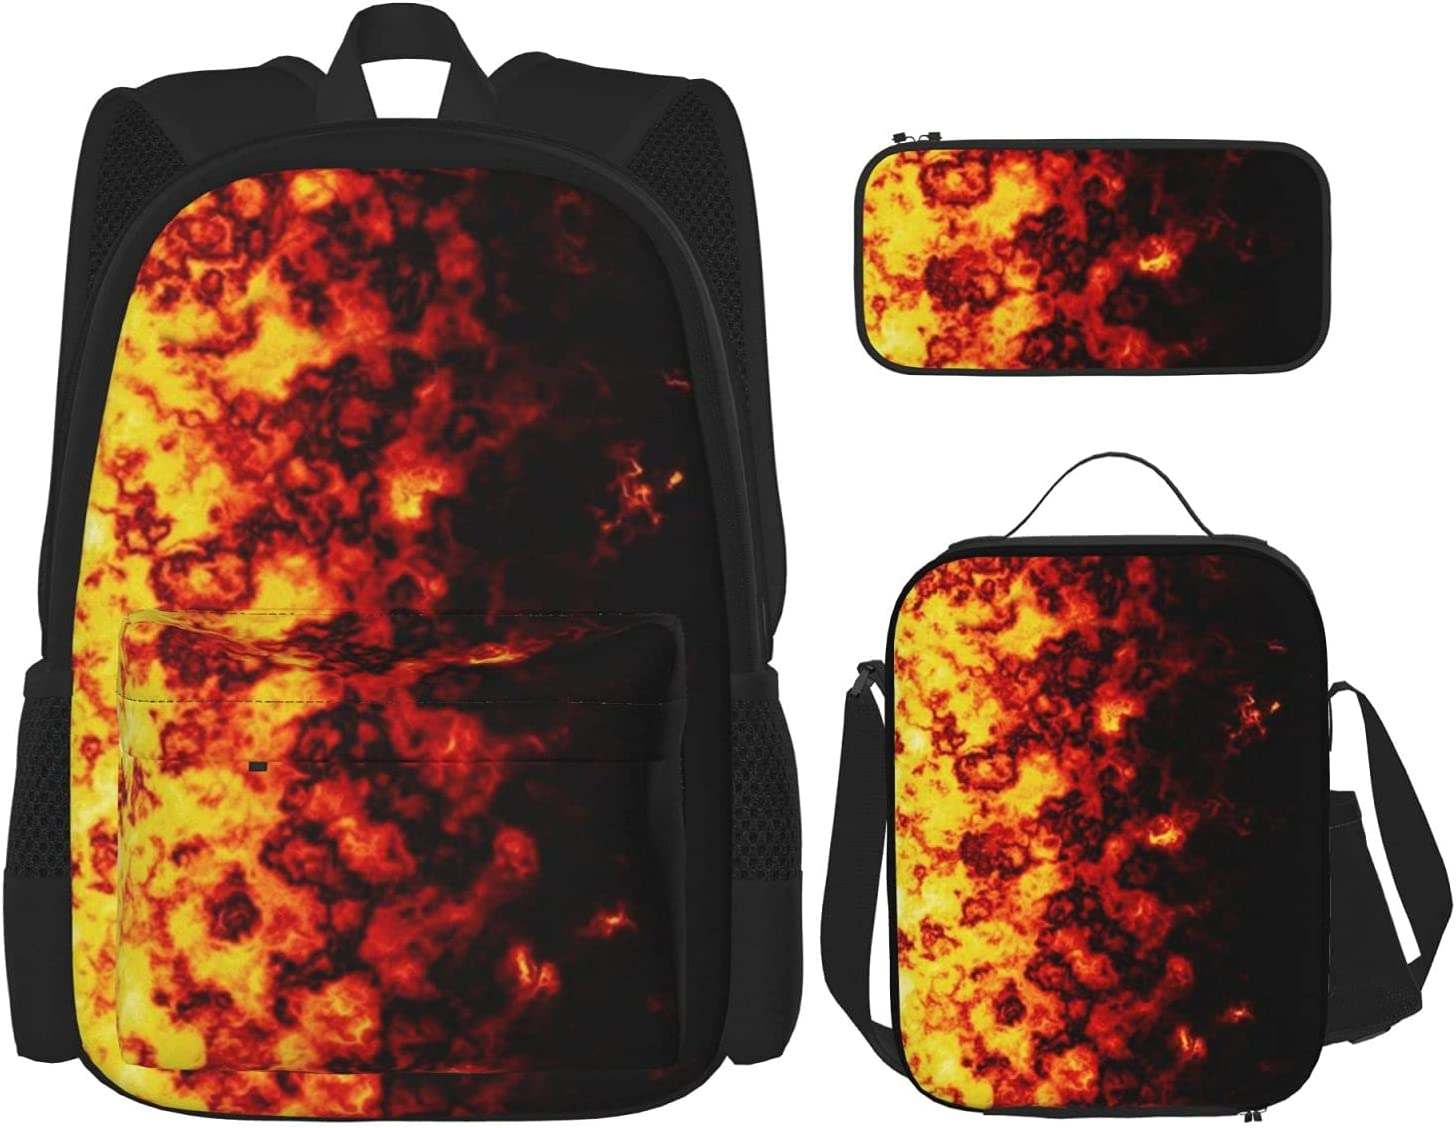 Backpack Bags Fire Border Bag with Lunch 3 2021new shipping latest free Pencil Pouch Case